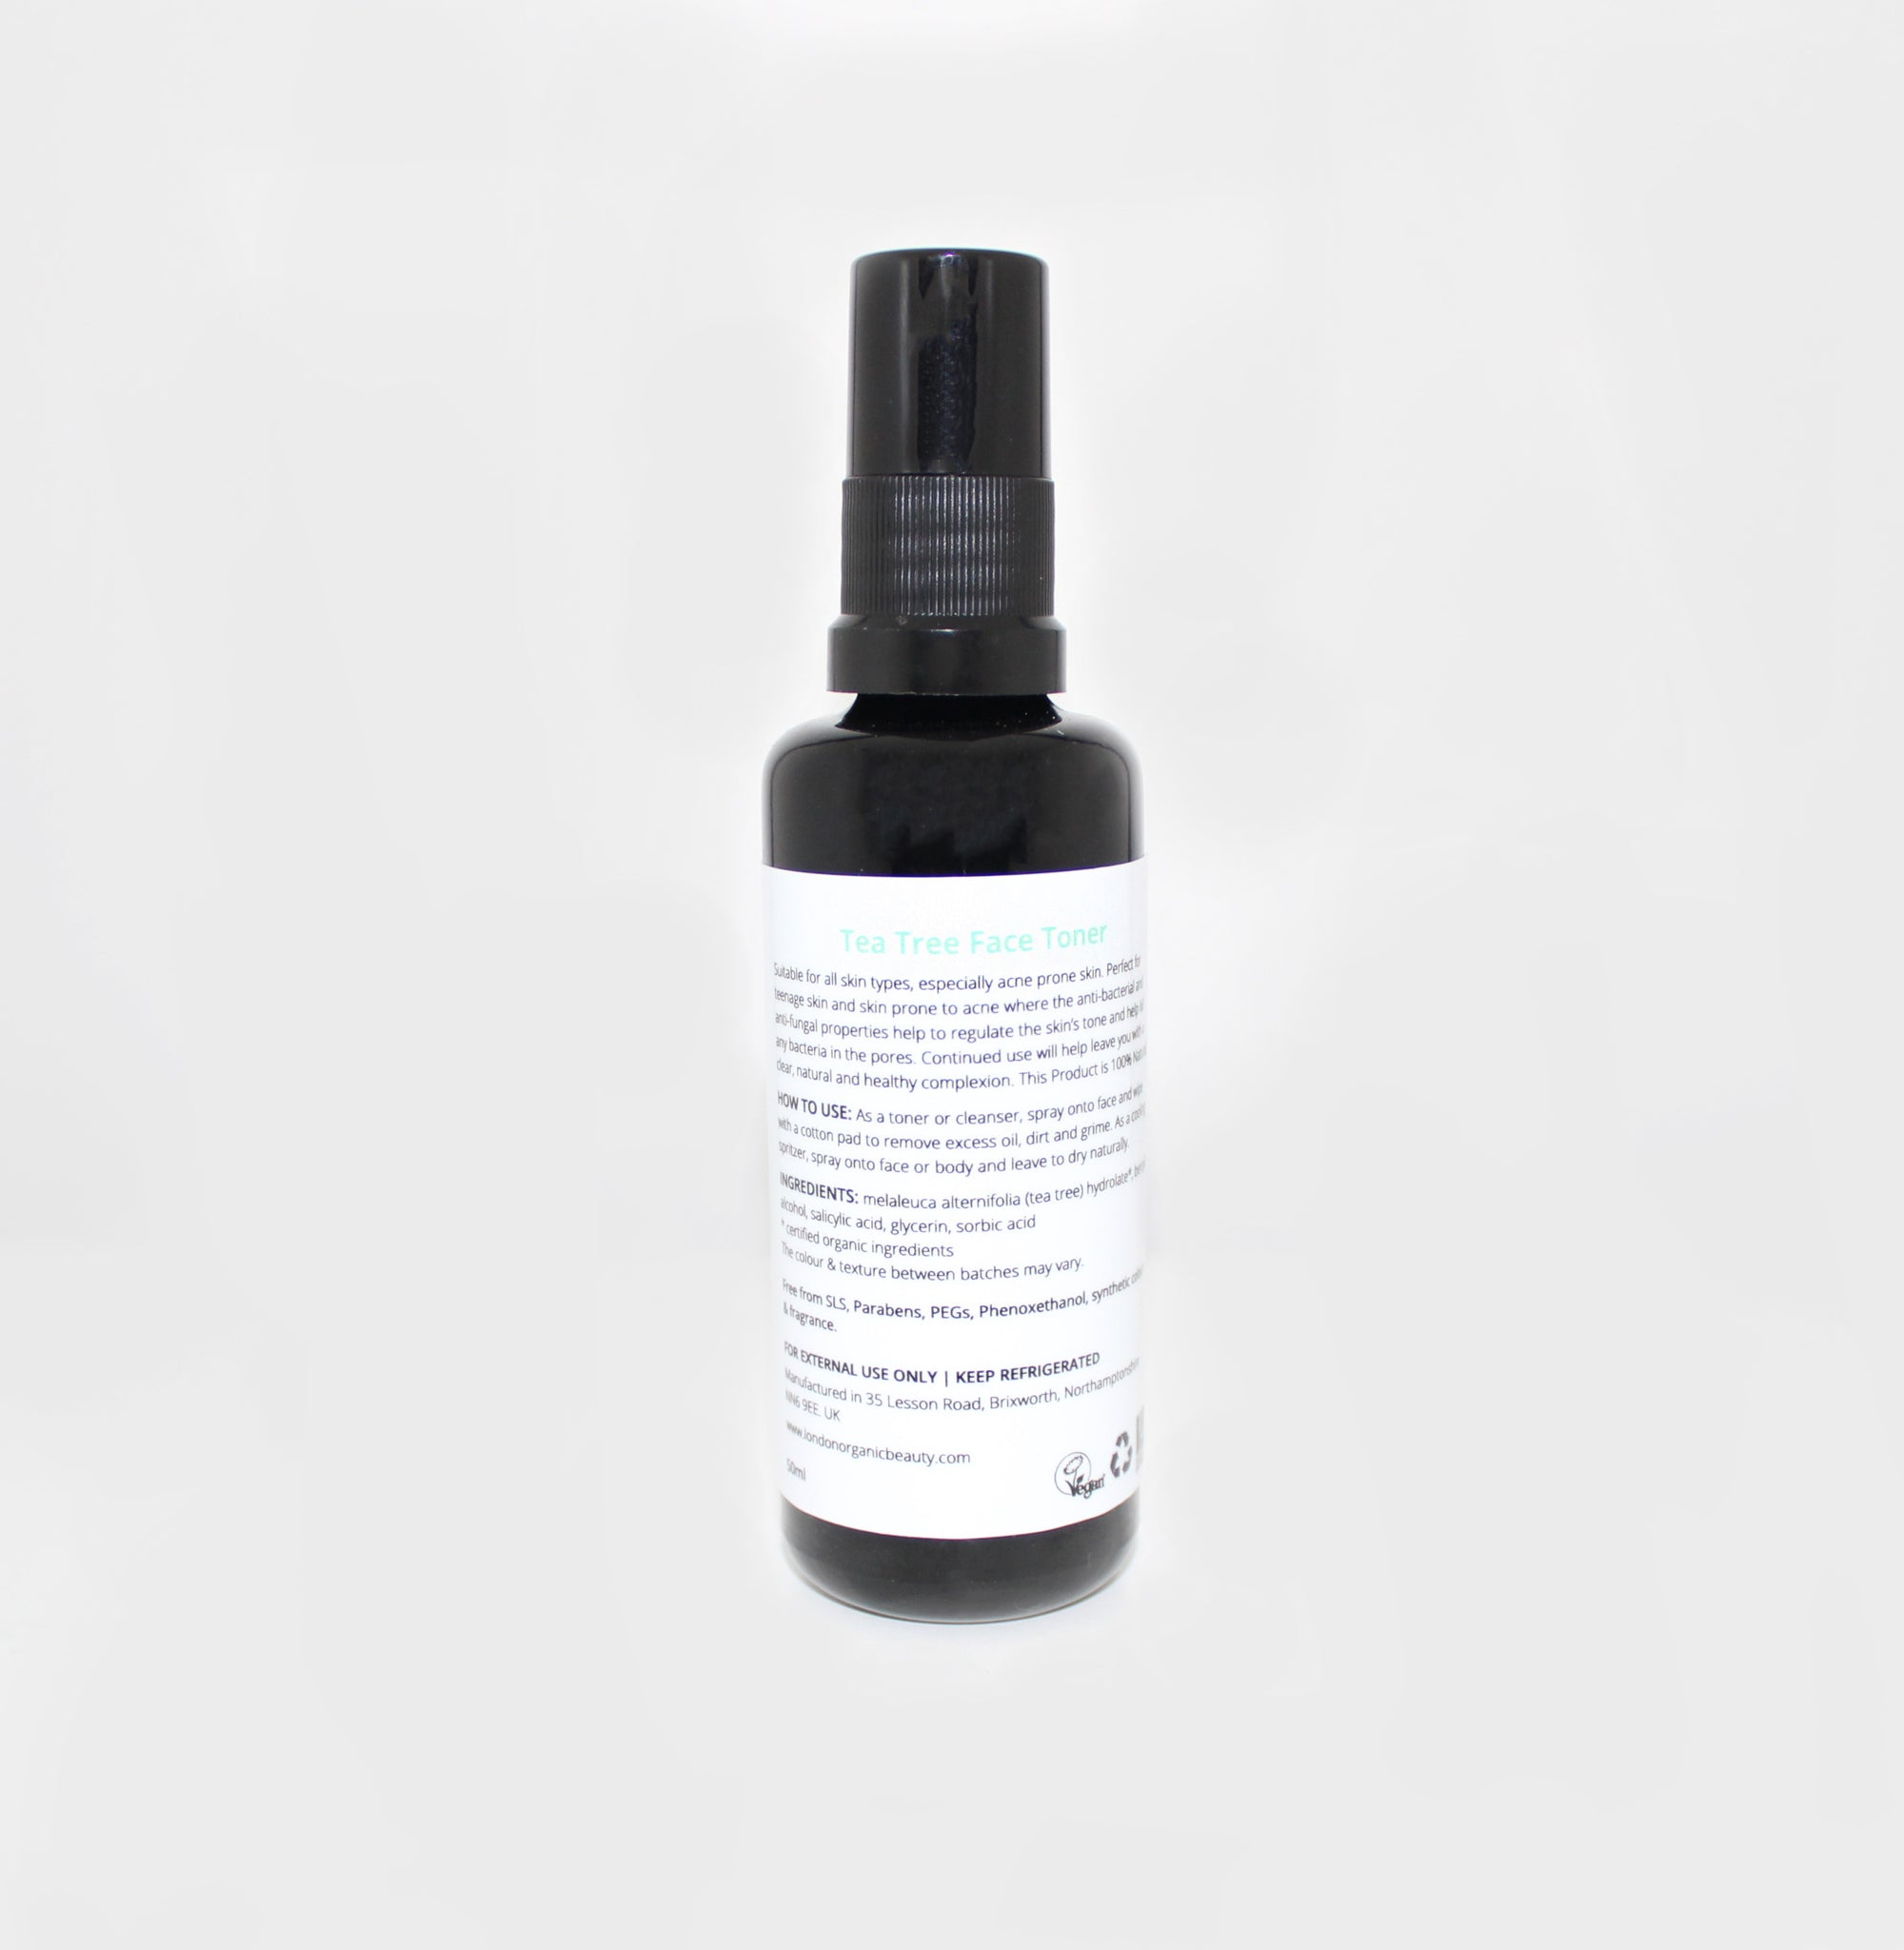 Orange Face Toner (Dry)